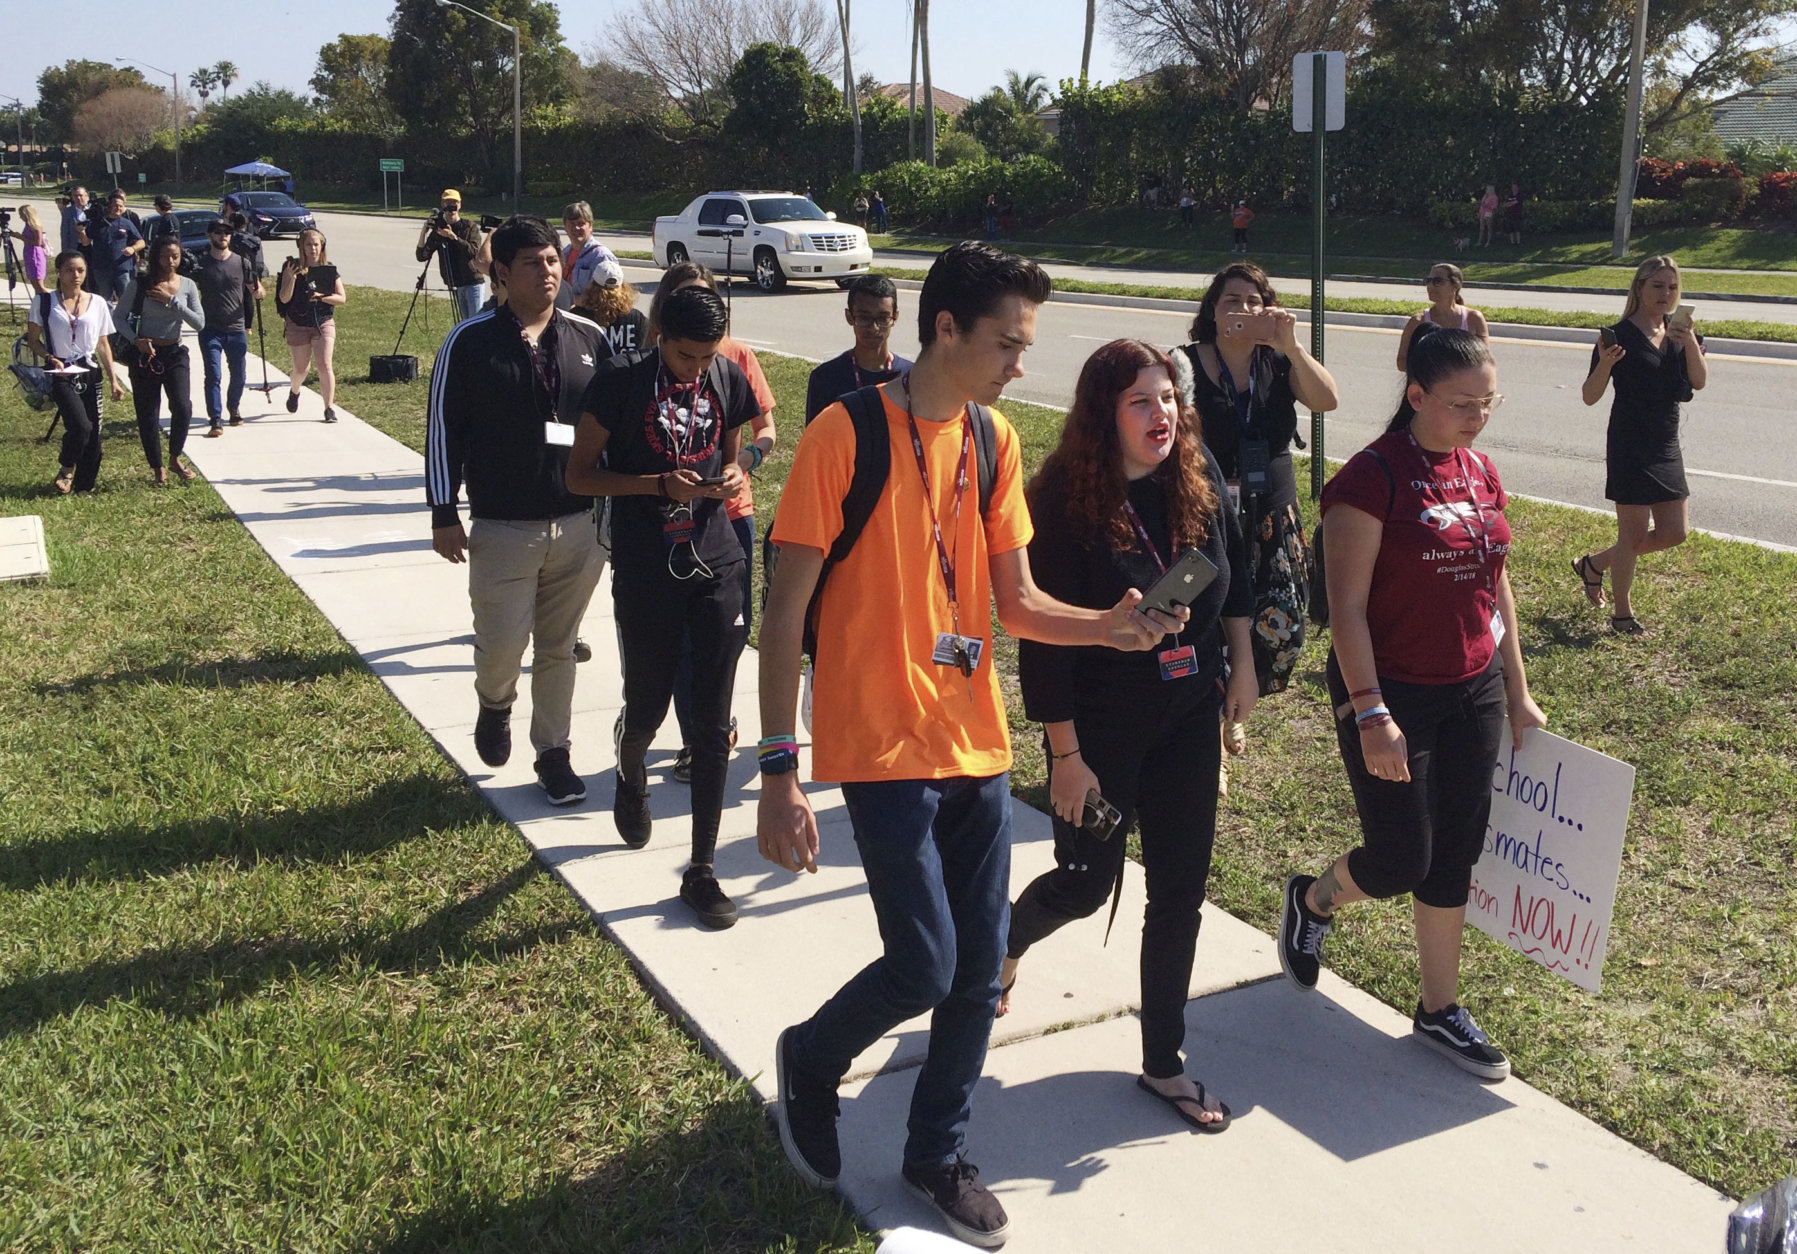 David Hogg, left, a student activist from Marjory Stoneman Douglas High School speaks to a student as they walk out of their school, Friday, April 20, 2018 in Parkland, Fla.  Another wave of student walkouts is expected to disrupt classes Friday at hundreds of schools across the U.S. as young activists press for tougher gun laws. The protests were chosen to line up with the 19th anniversary of the Columbine High School shooting, which left 13 people dead in Littleton, Colorado. At 10 a.m., students plan to gather for moments of silence honoring the victims at Columbine and other shootings. (AP Photo/Terry Spencer)